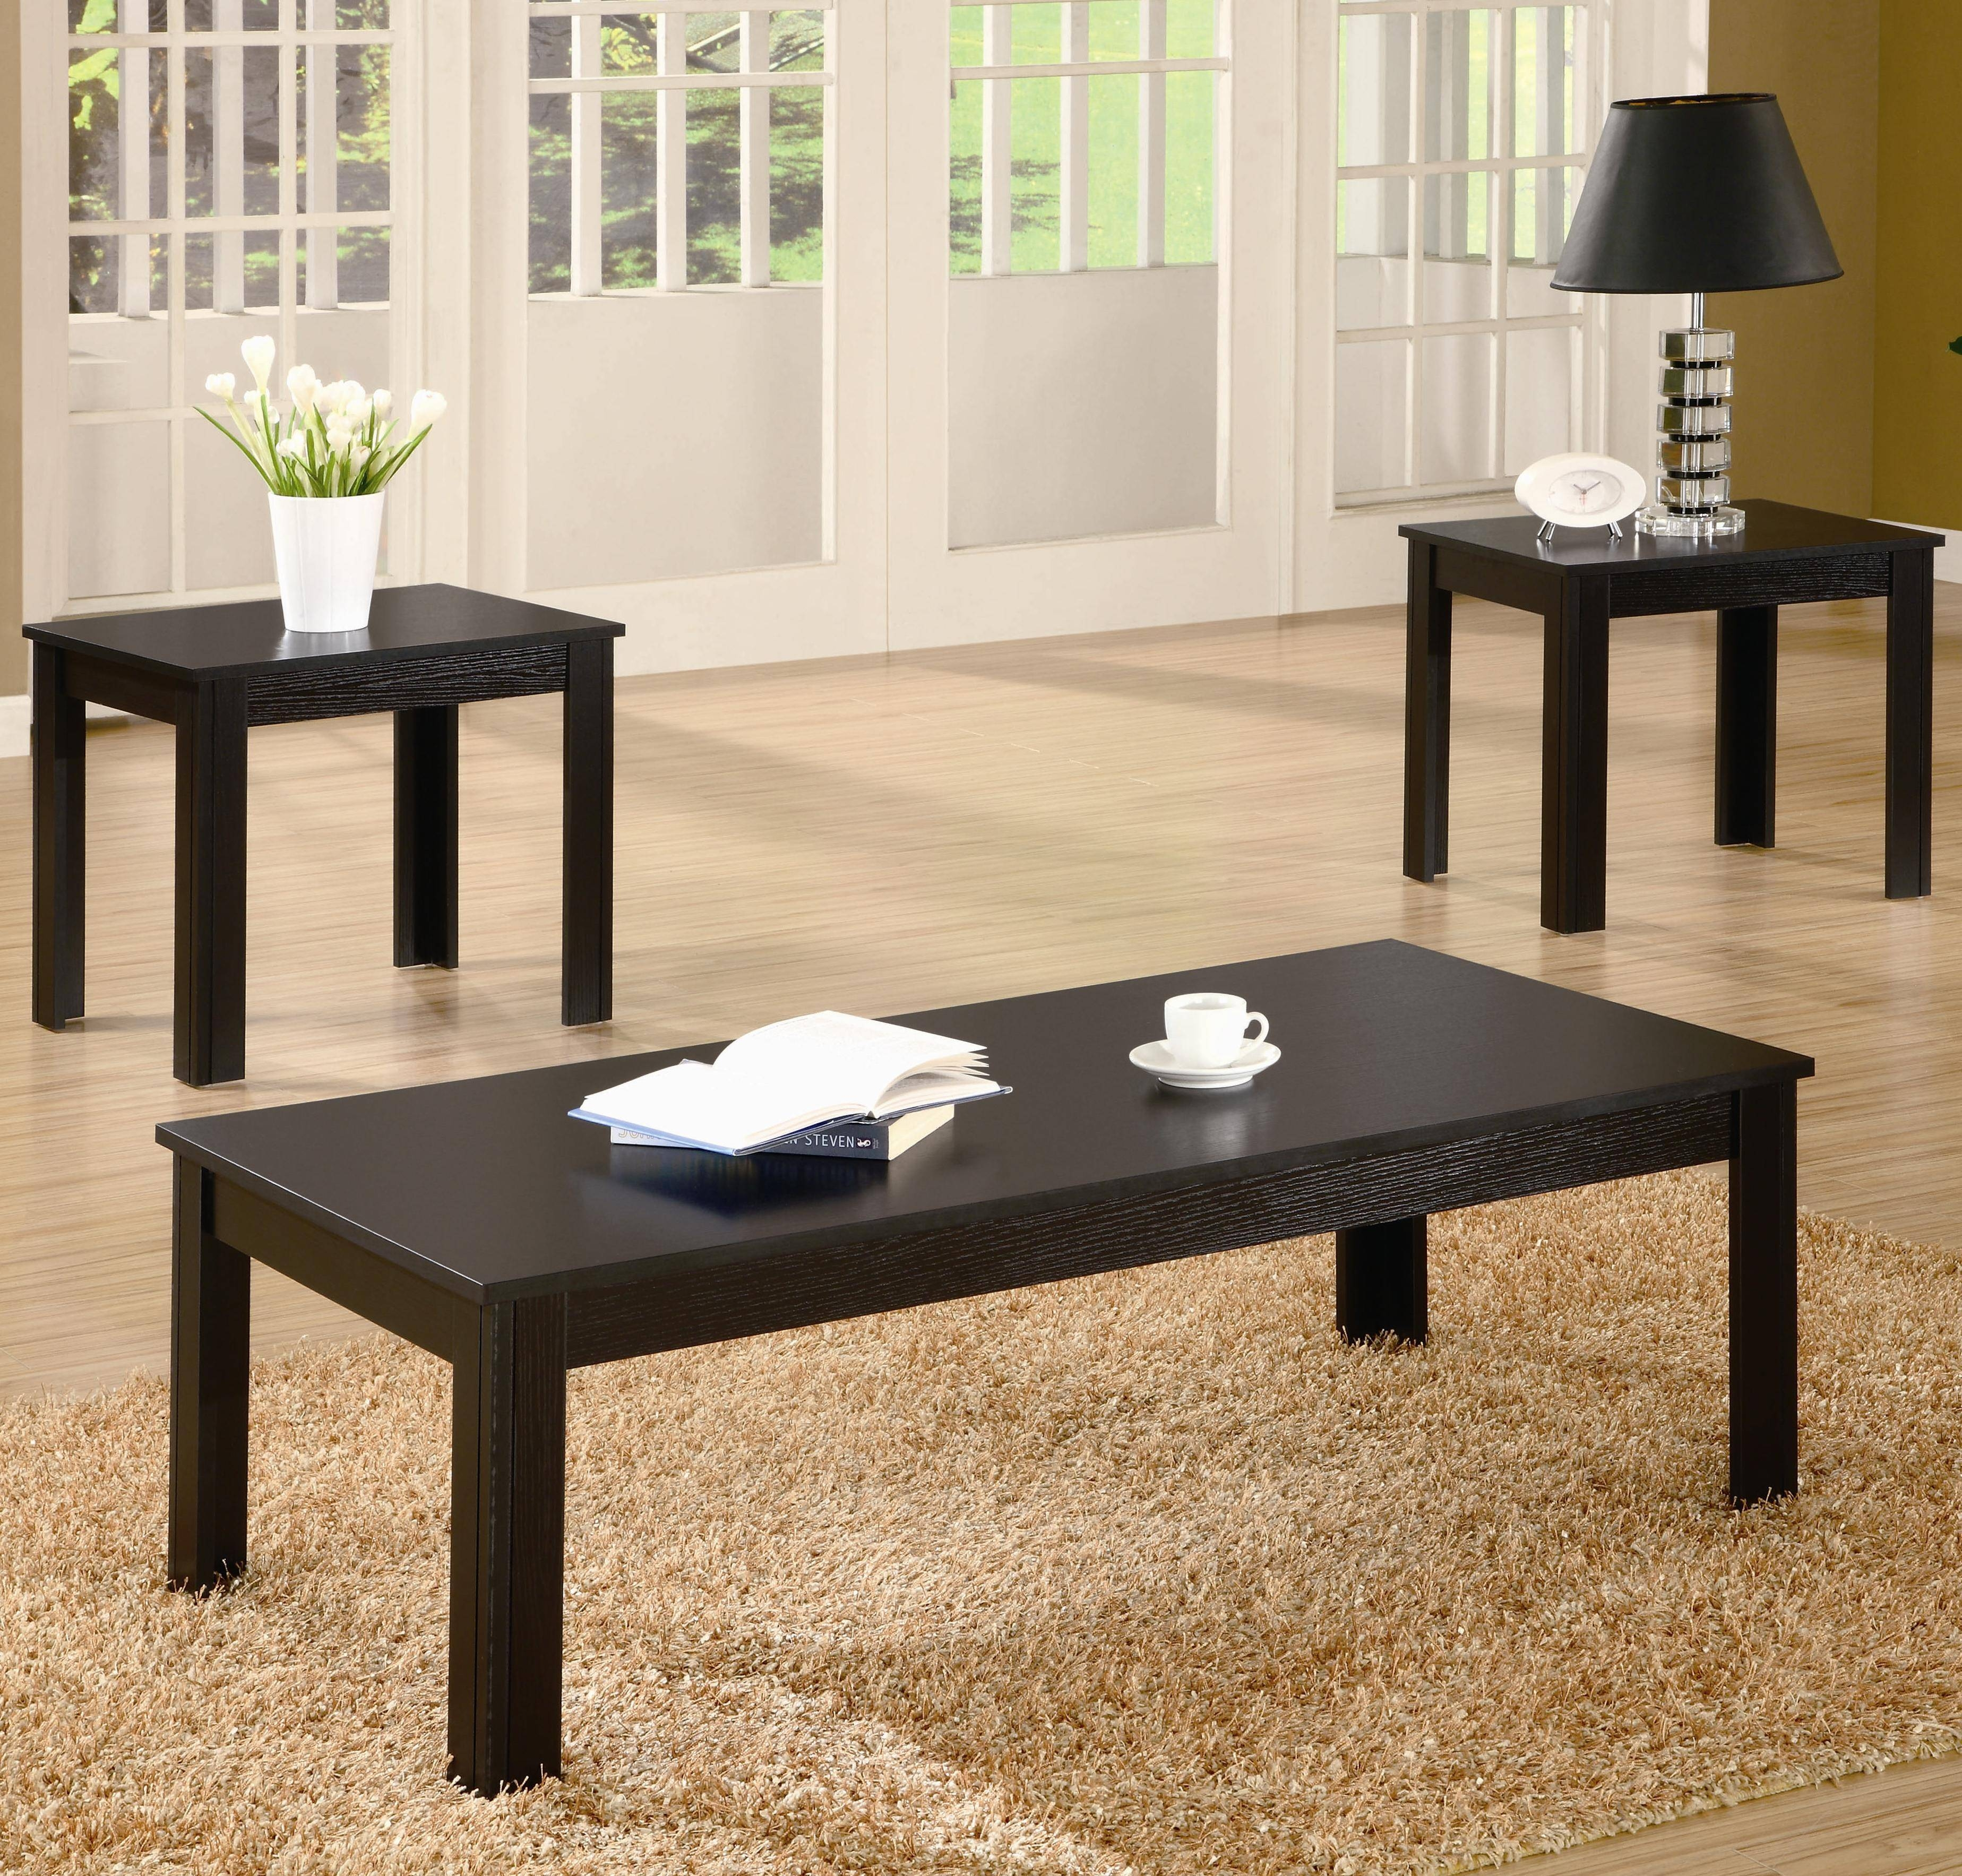 Top 30 Of Big Black Coffee Tables